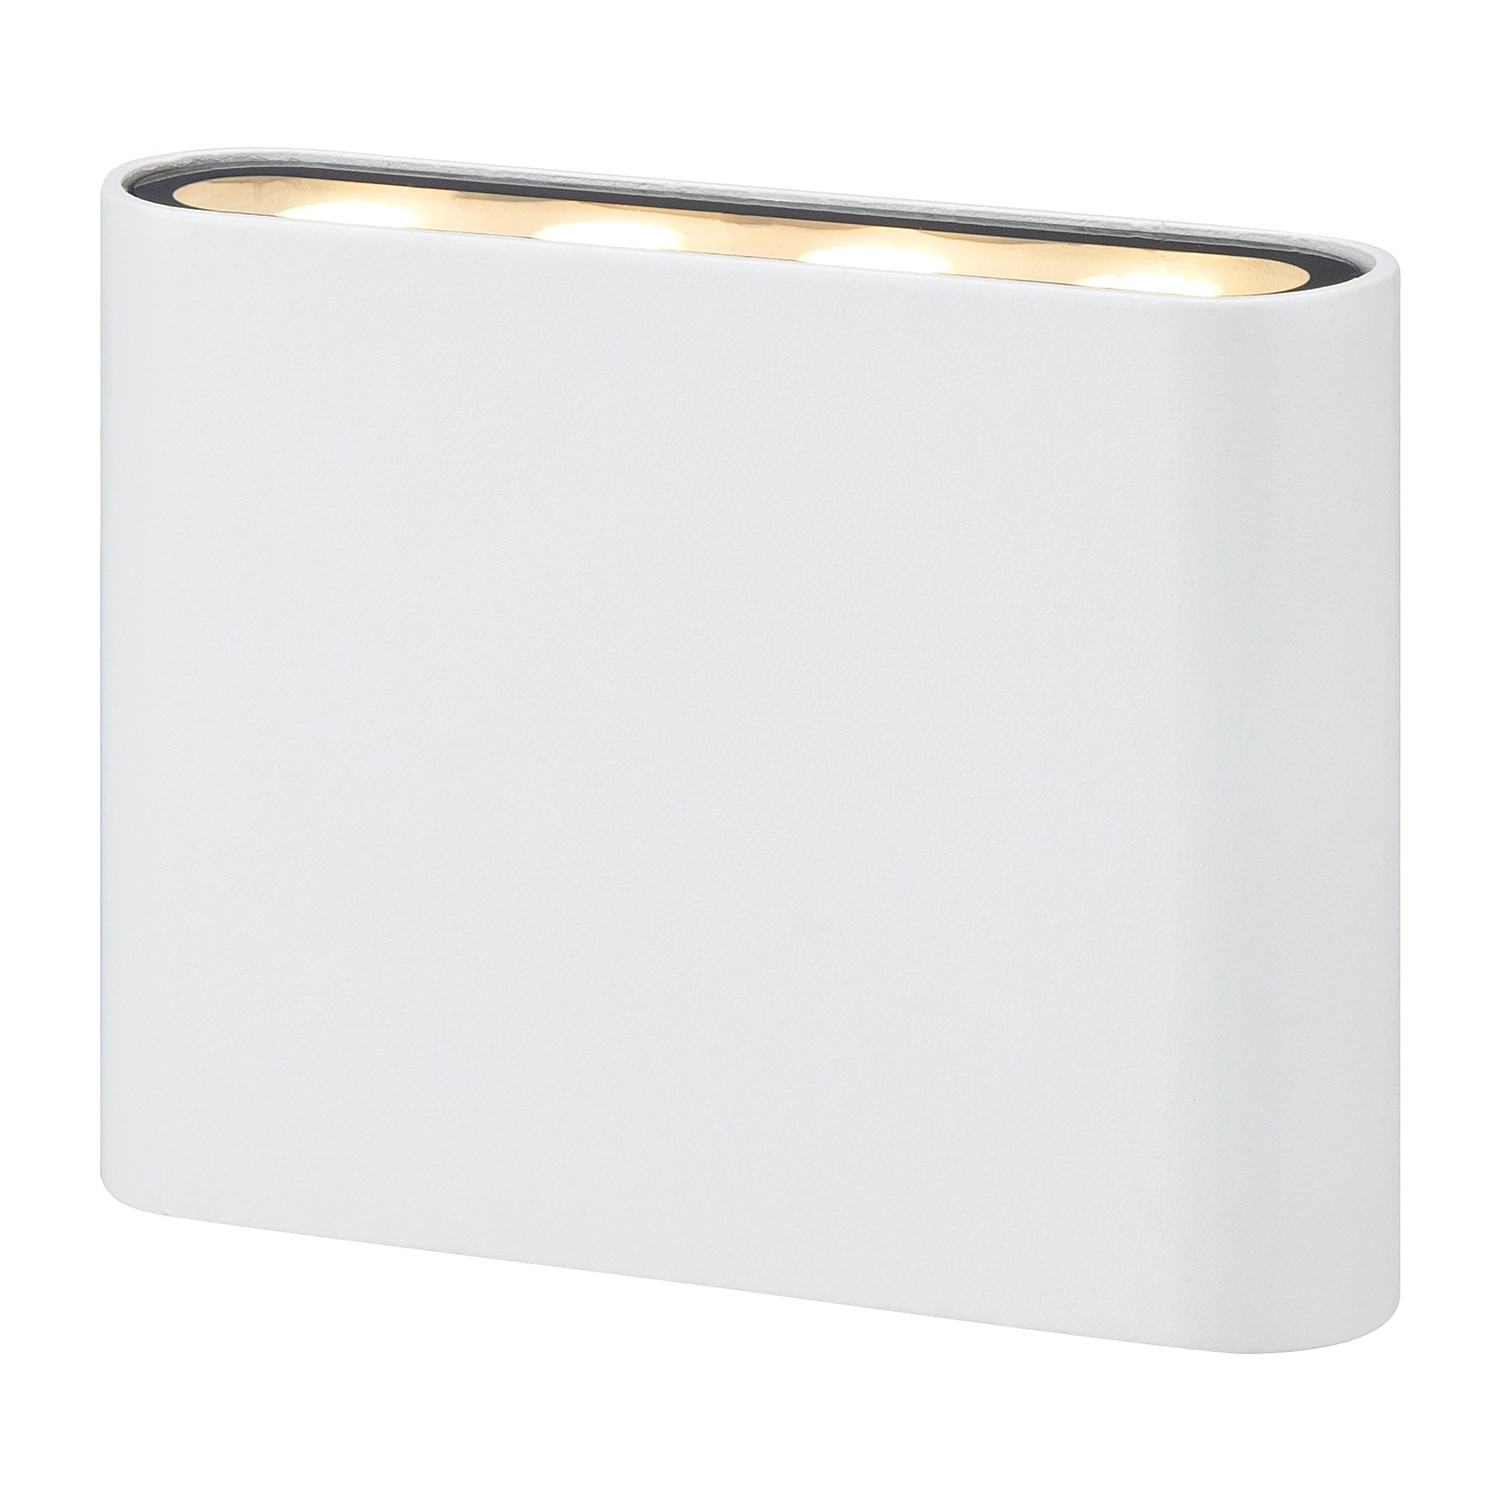 home24 LED-Wandleuchte Arion